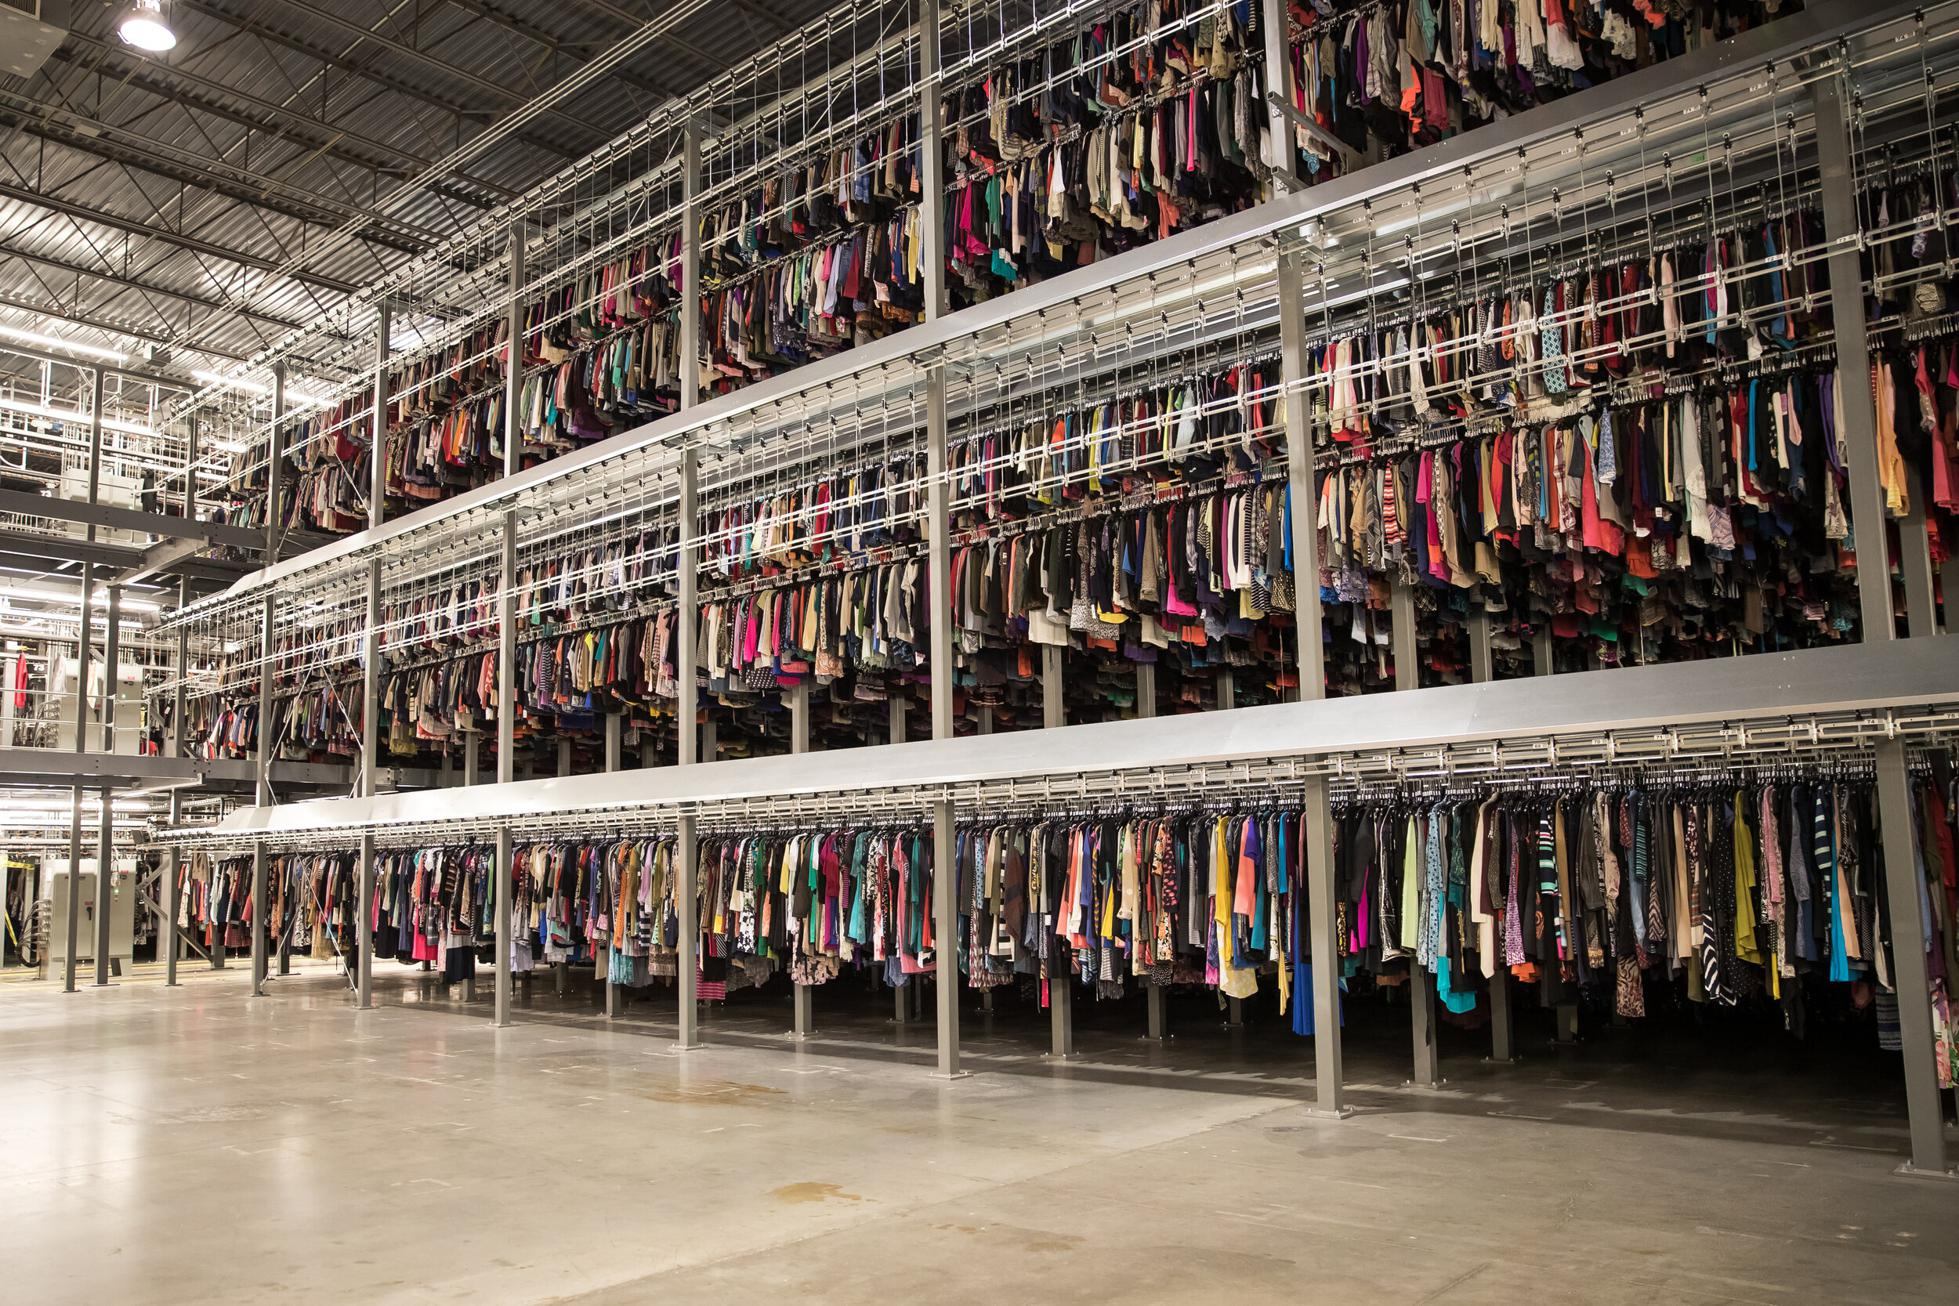 The twelve-year-old company, which processes millions of pieces of used clothing every year, lost $48 million on $186 million in revenue in 2020.